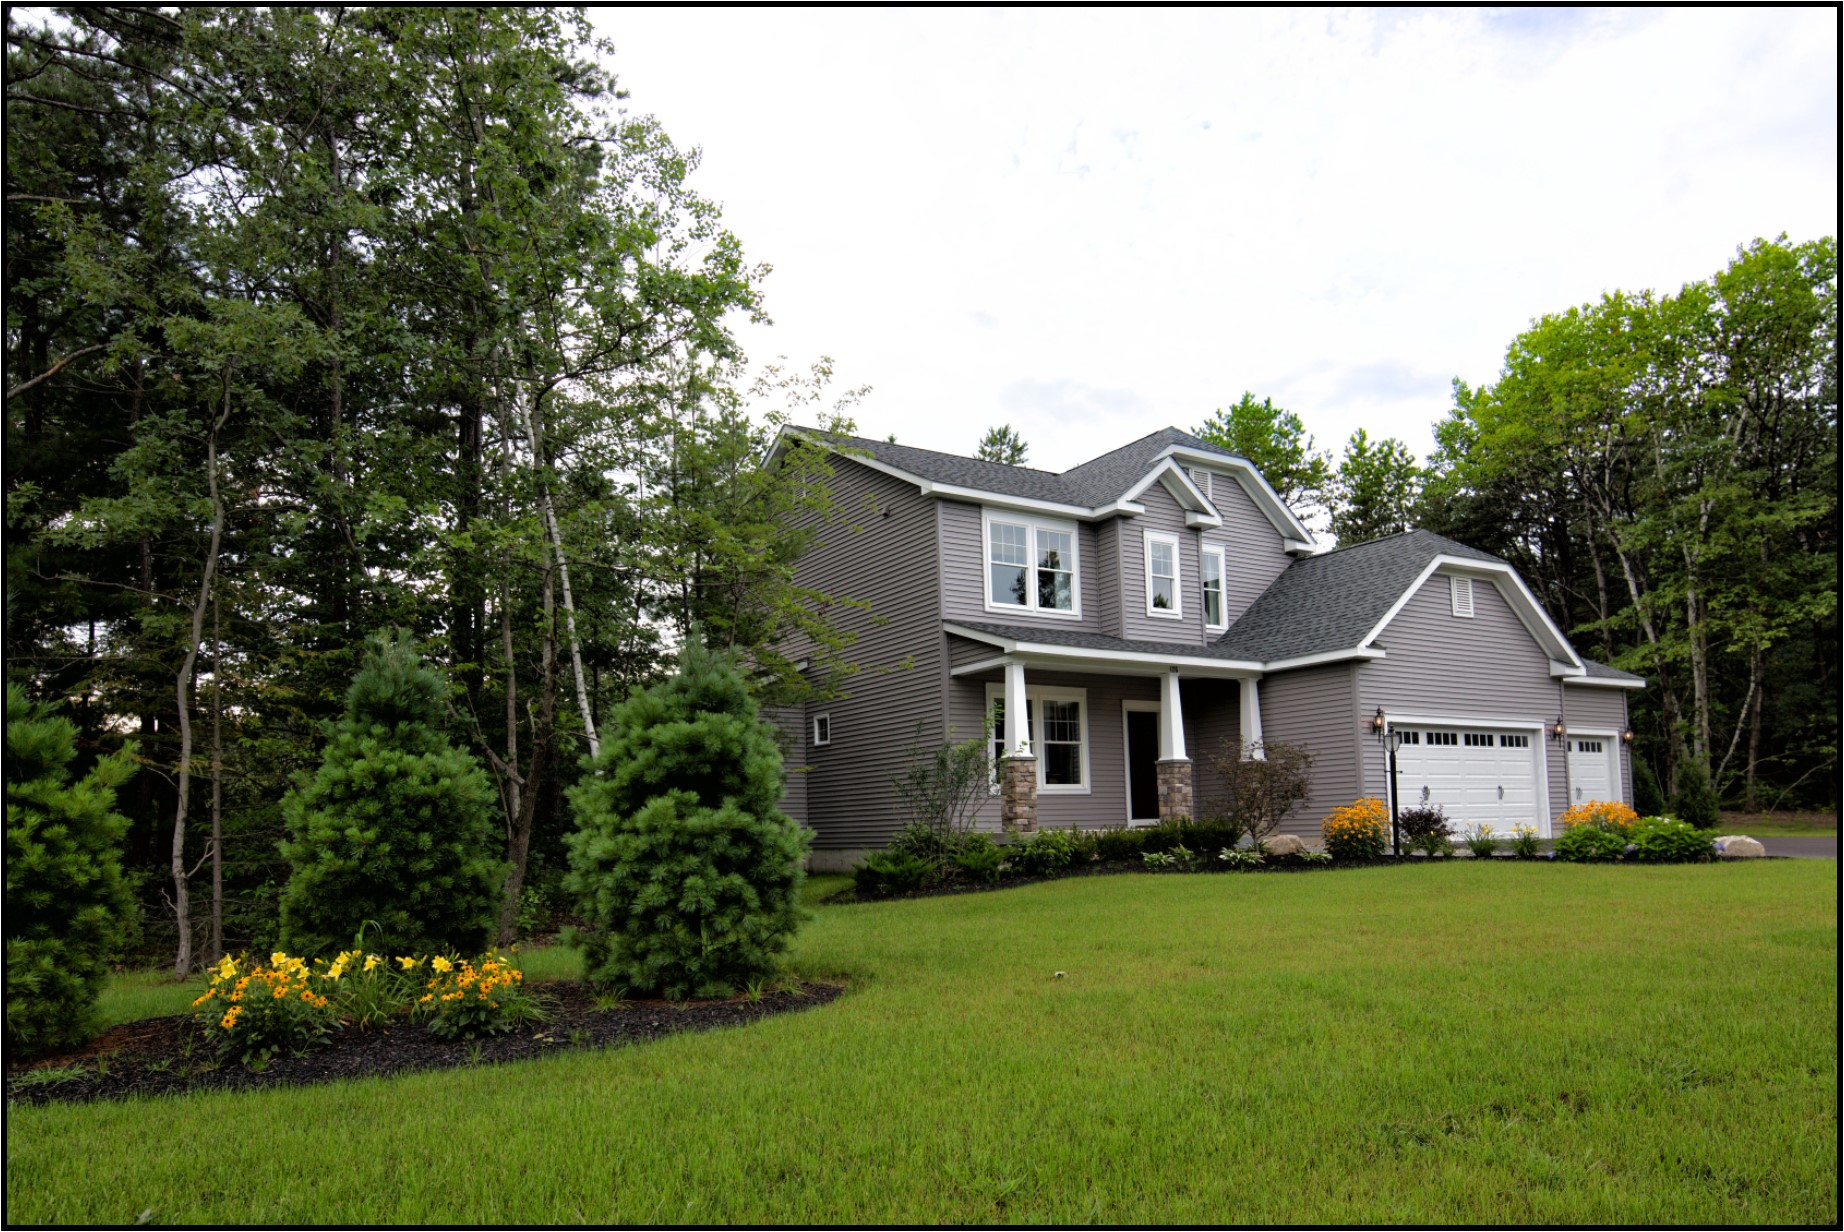 Exterior Photo of Two Story Home with Woods and Landscaping - Gray